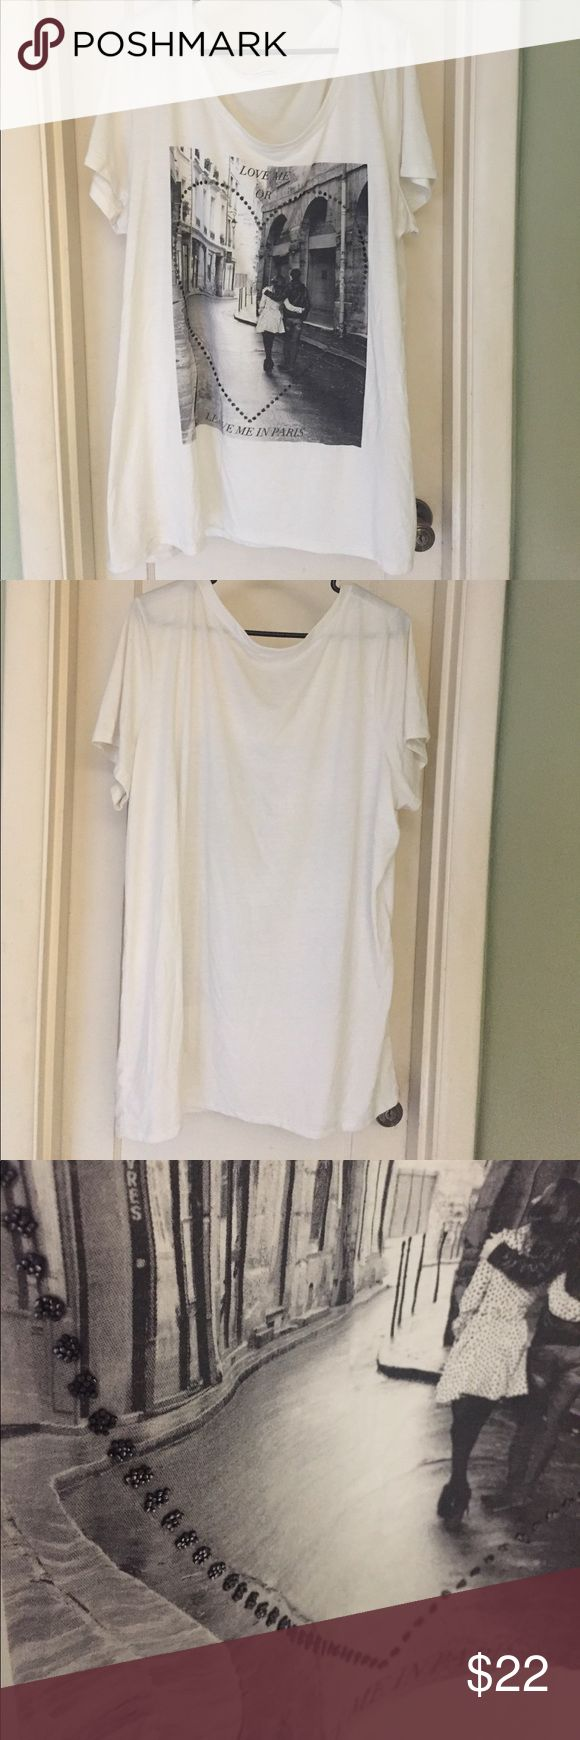 NWOT Maurices' Love me or leave me in Paris Shirt Nice, light material. All around a really cute shirt. This shirt has never been worn but I did take the tags off when I had gotten it. Maurices Tops Tees - Short Sleeve